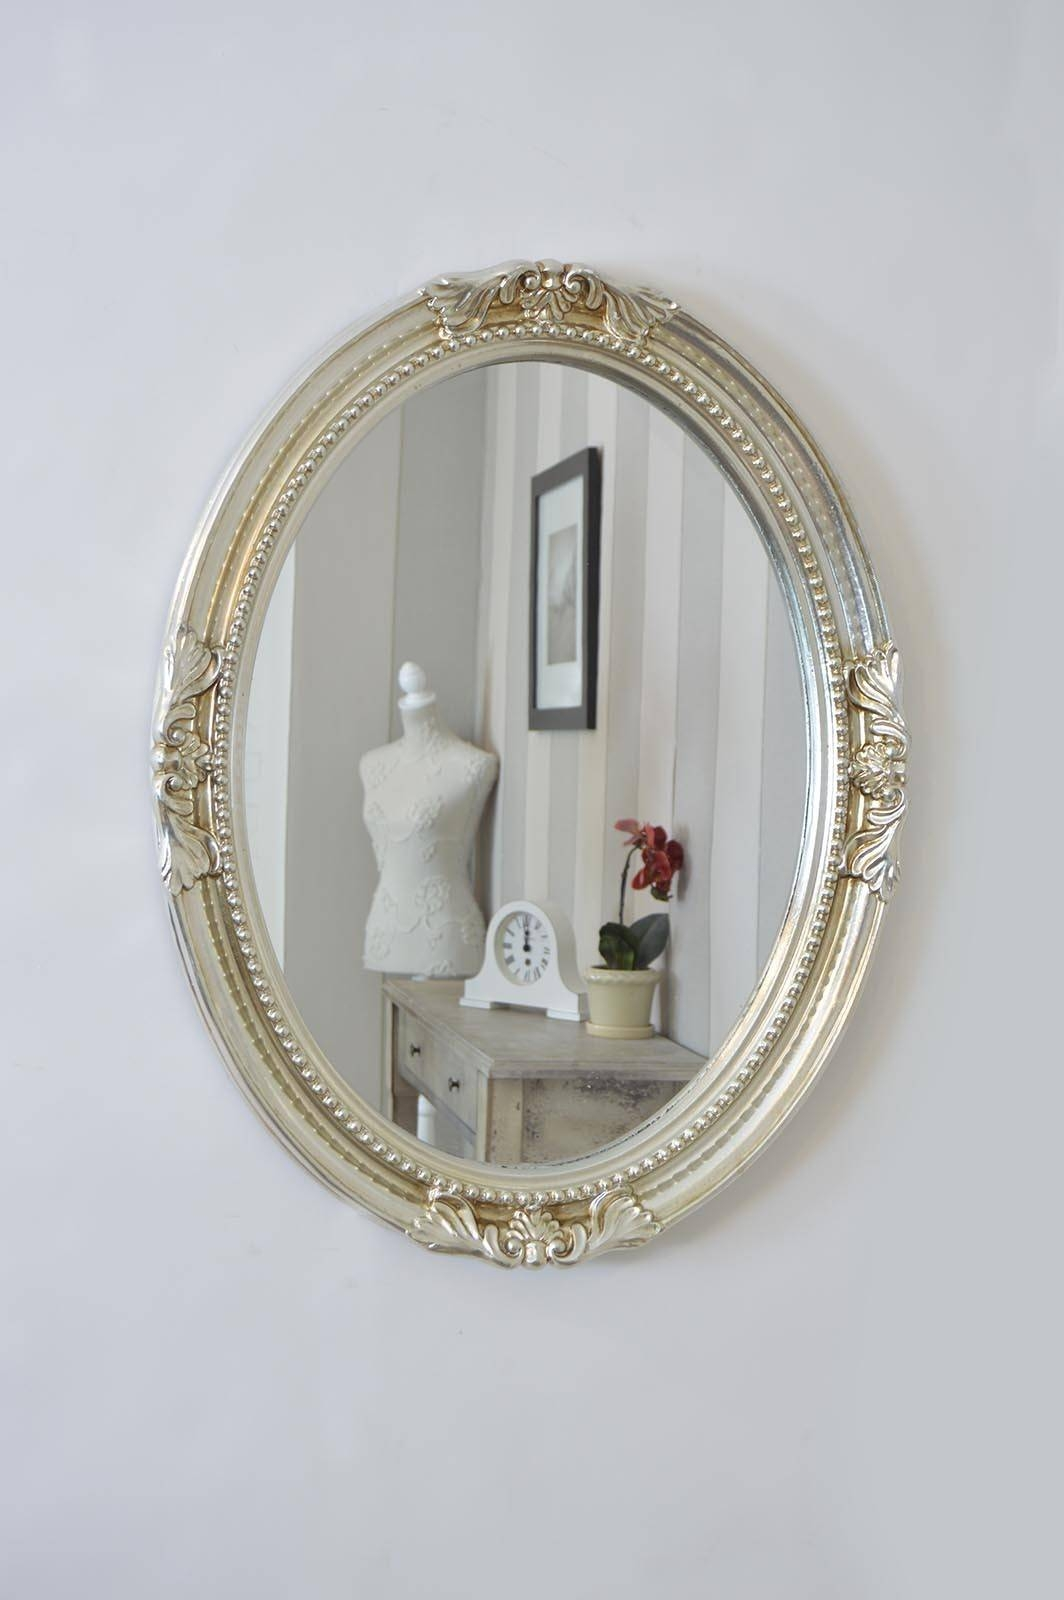 5 Tips For Best Choices Of Oval Wall Mirror - Interior Design with Silver Oval Mirrors (Image 1 of 25)